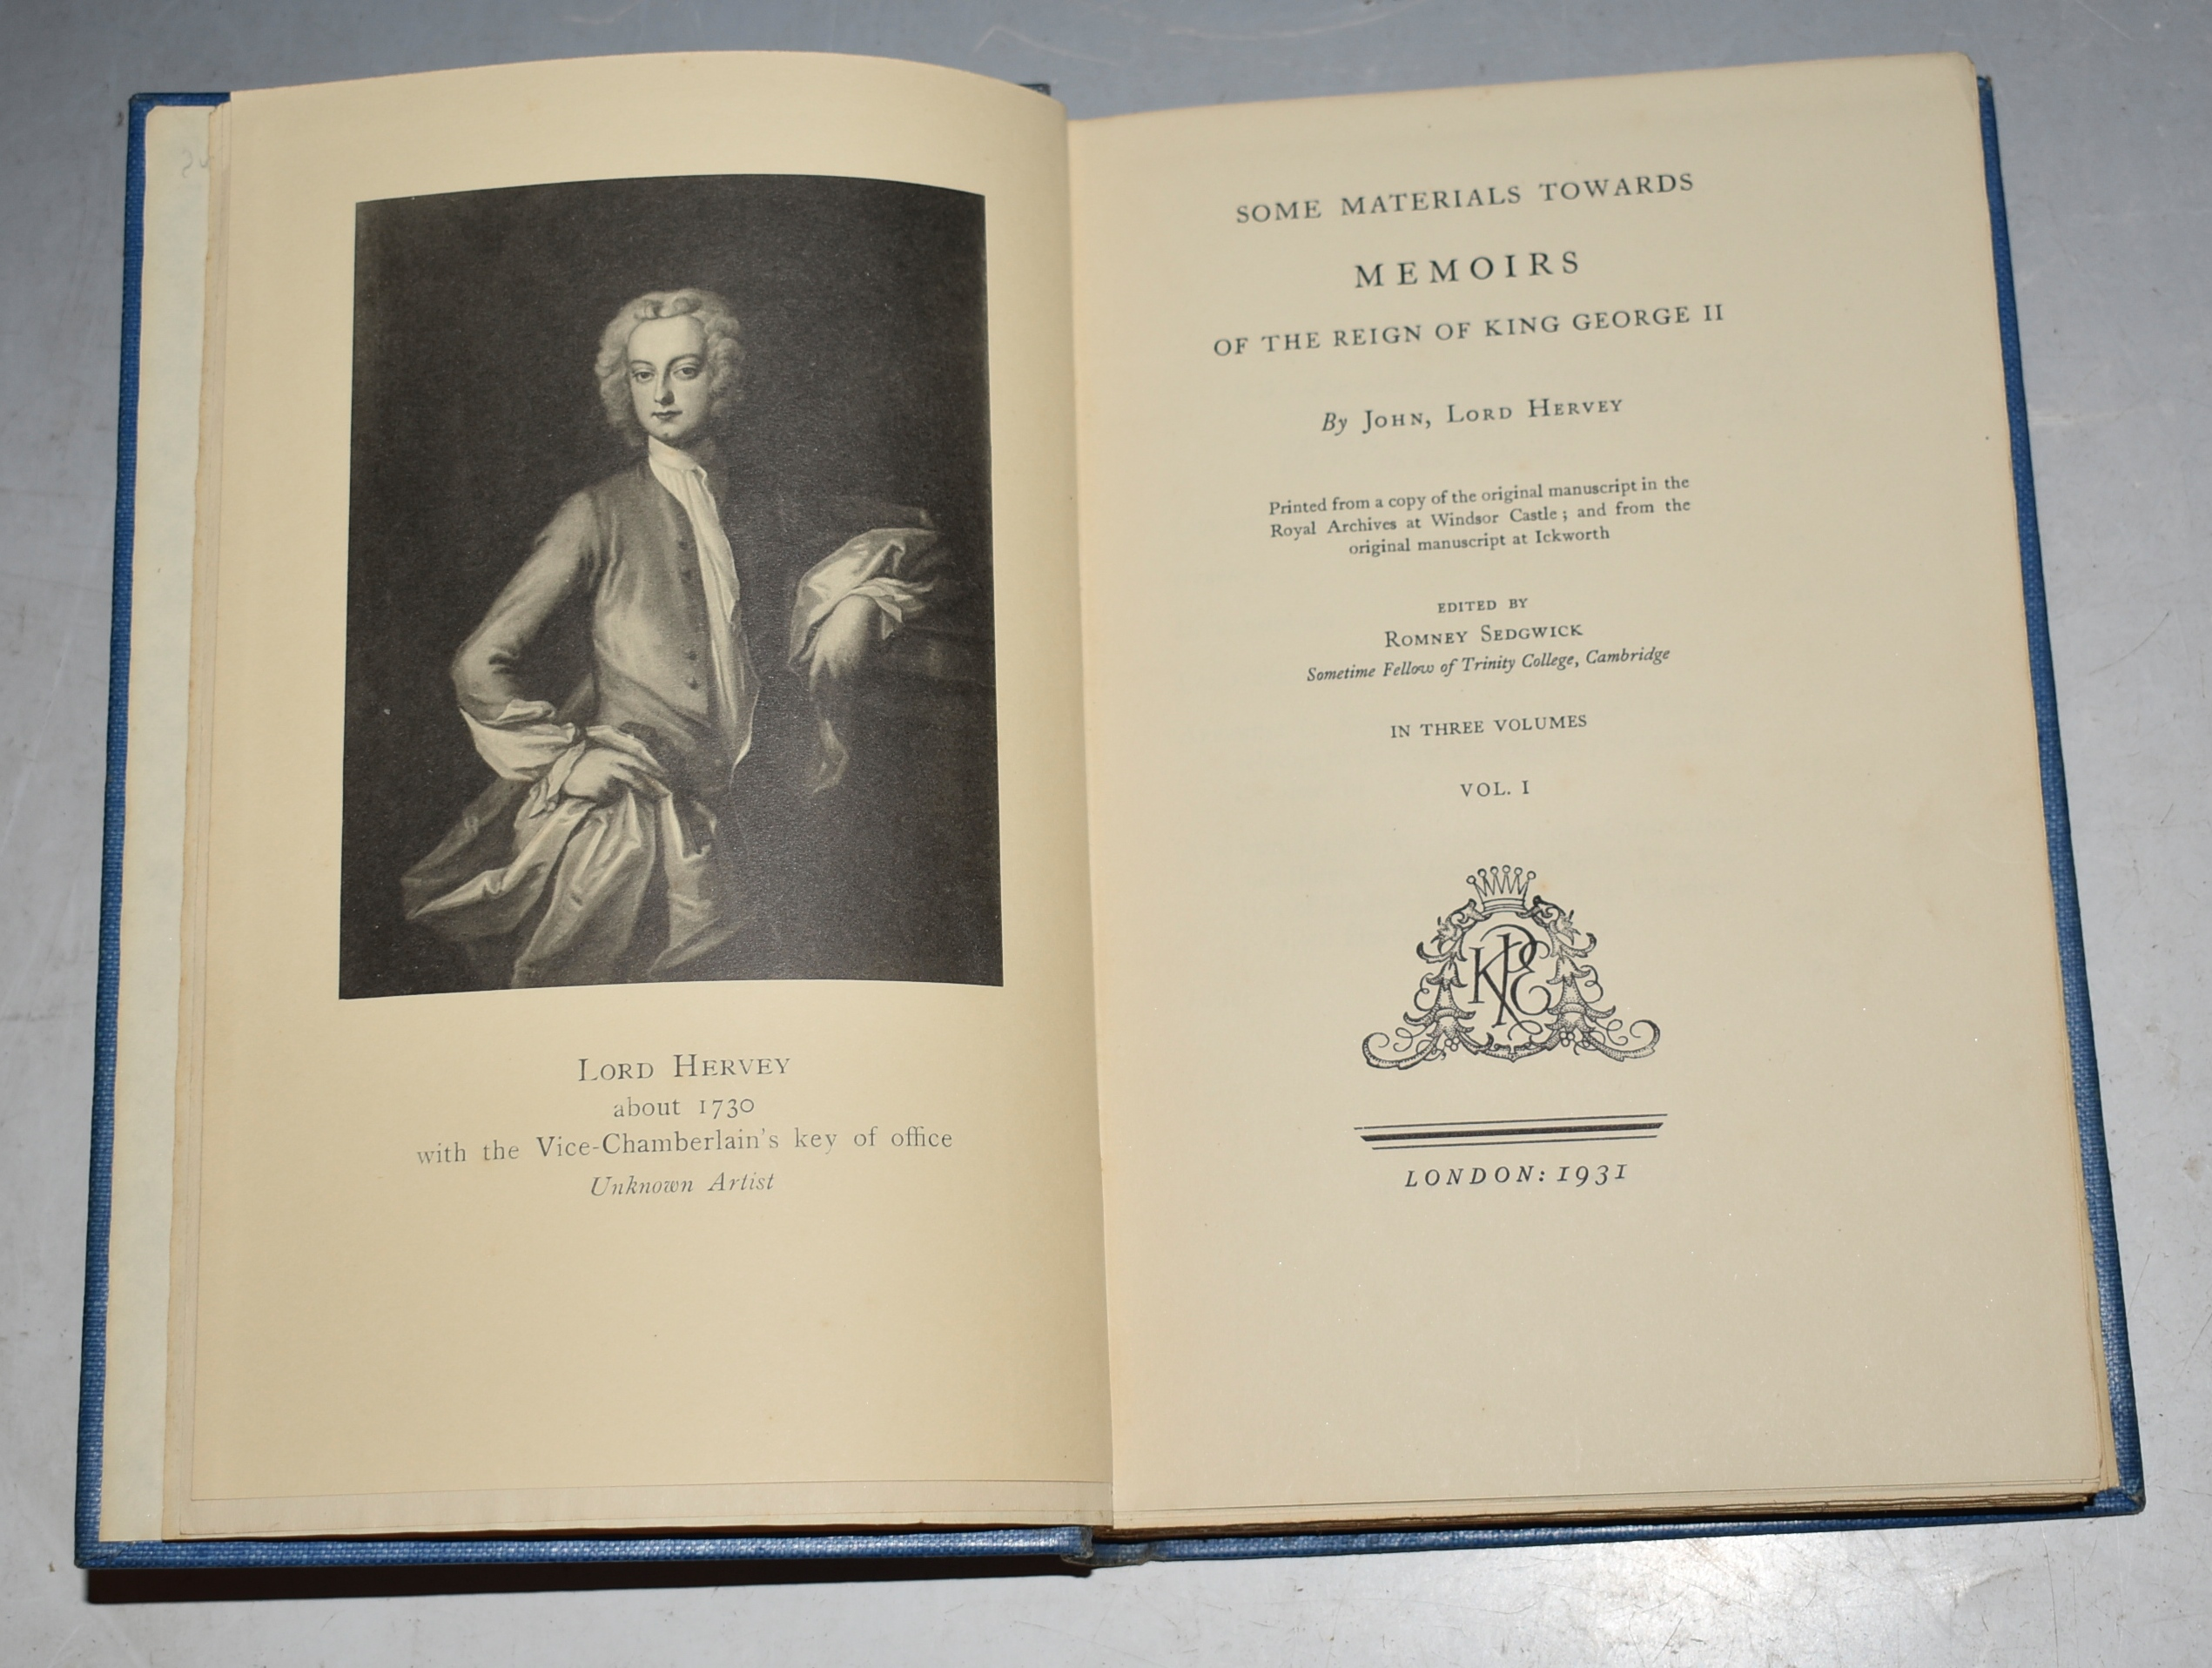 Image for Some Materials Towards Memoirs of the Reign of King George II. Printed from a copy of the original manuscript in the Royal Archives at Windsor Castle; and from the original manuscript at Ickworth. Edited by Romney Sedgwick. In Three Volumes.